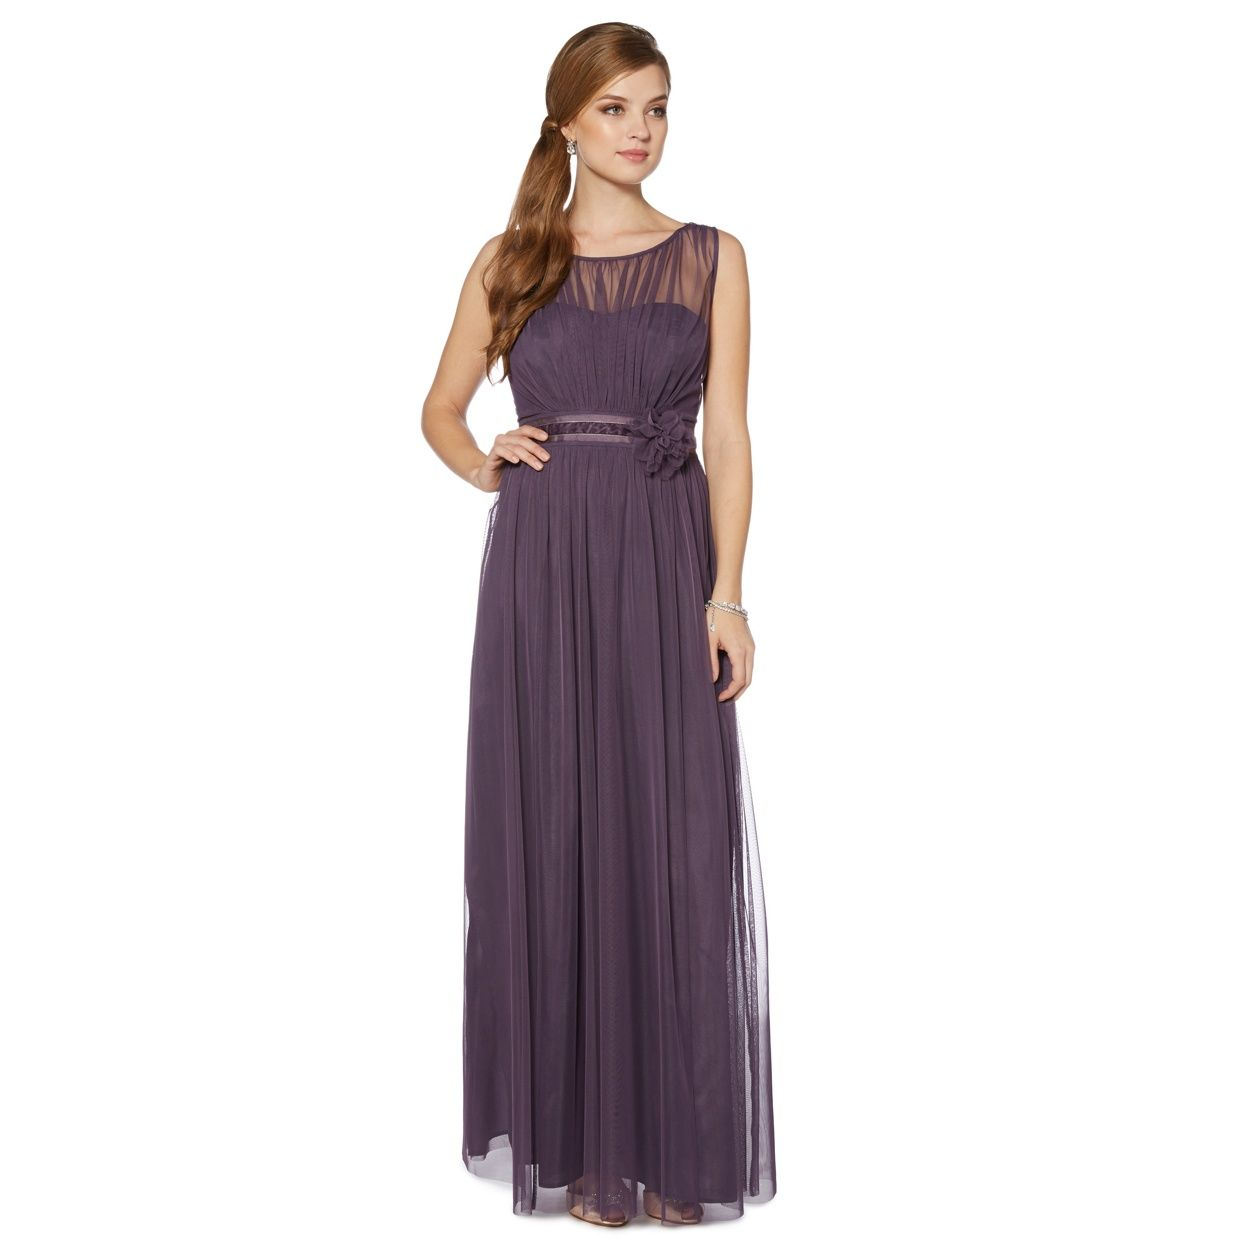 Debut Mauve mesh build corsage maxi dress- at Debenhams.com ...